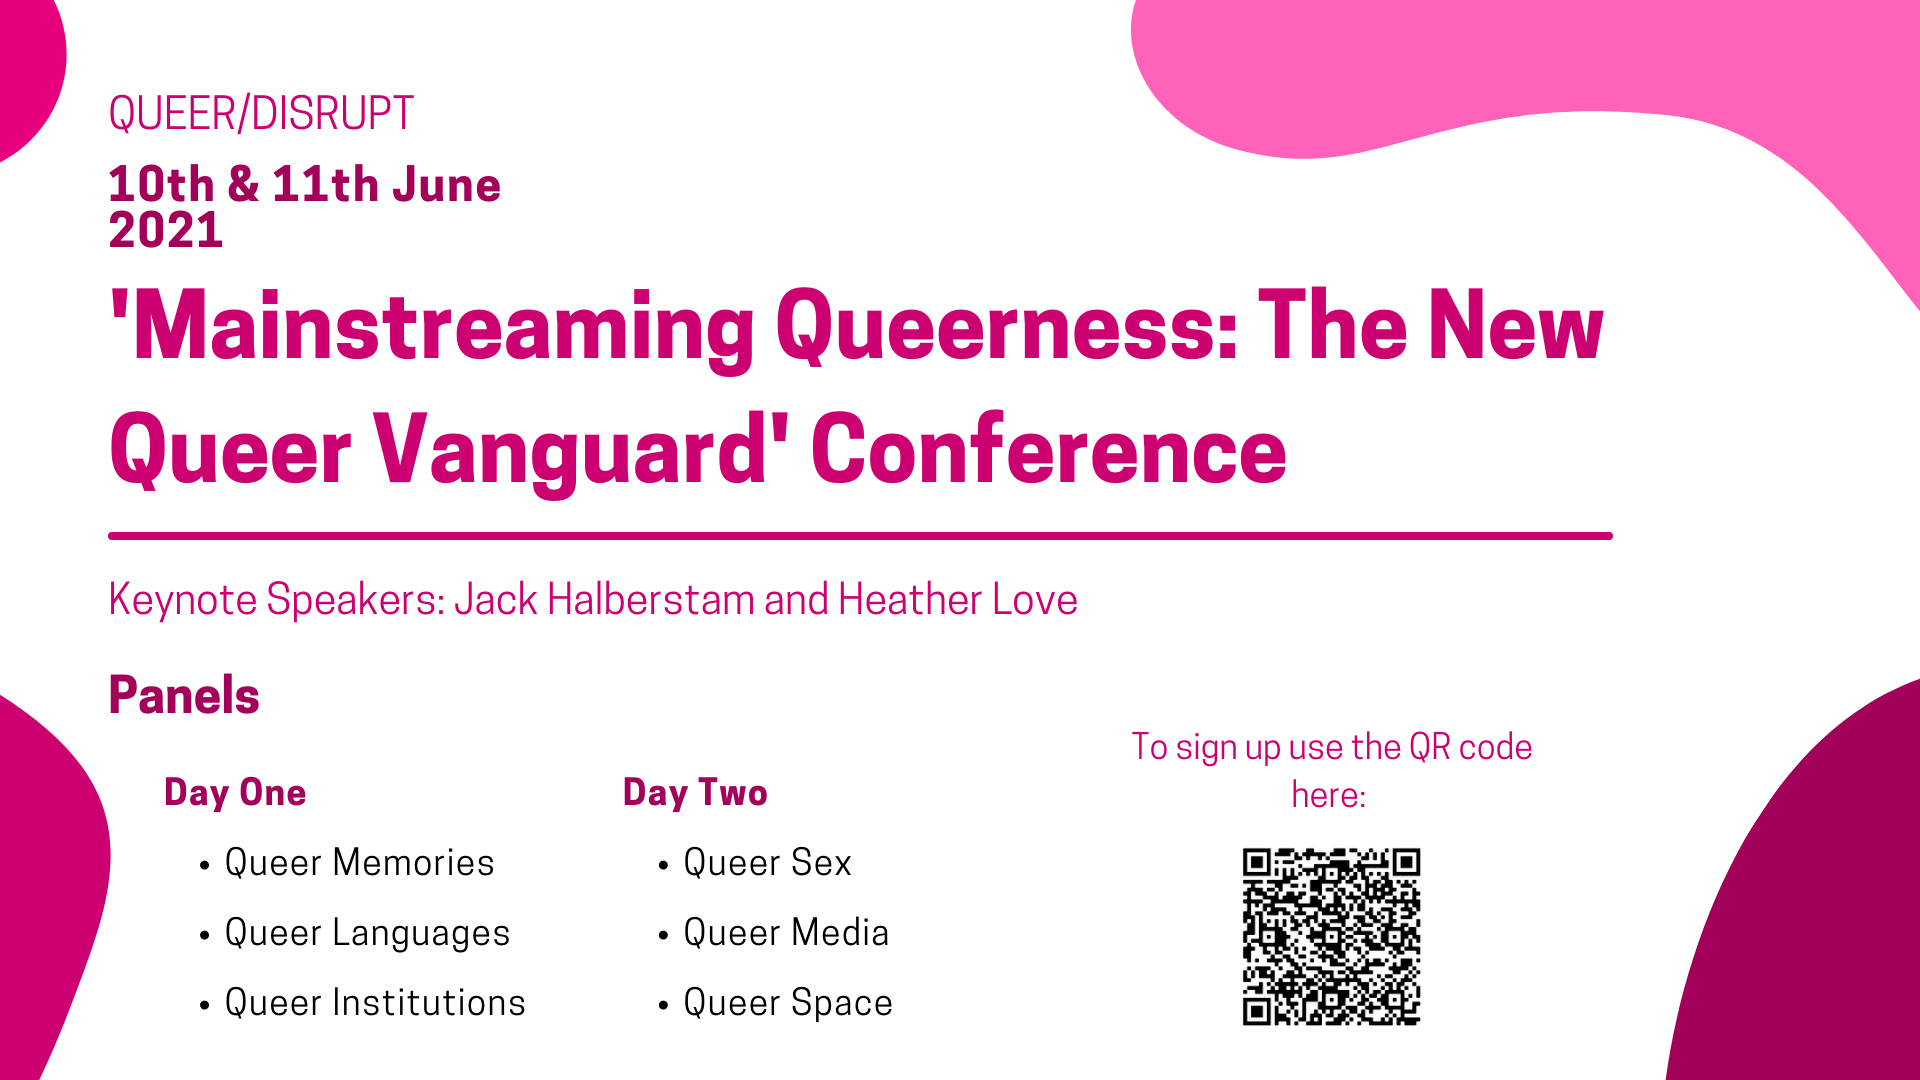 Mainstreaming Queerness The New Queer Vanguard